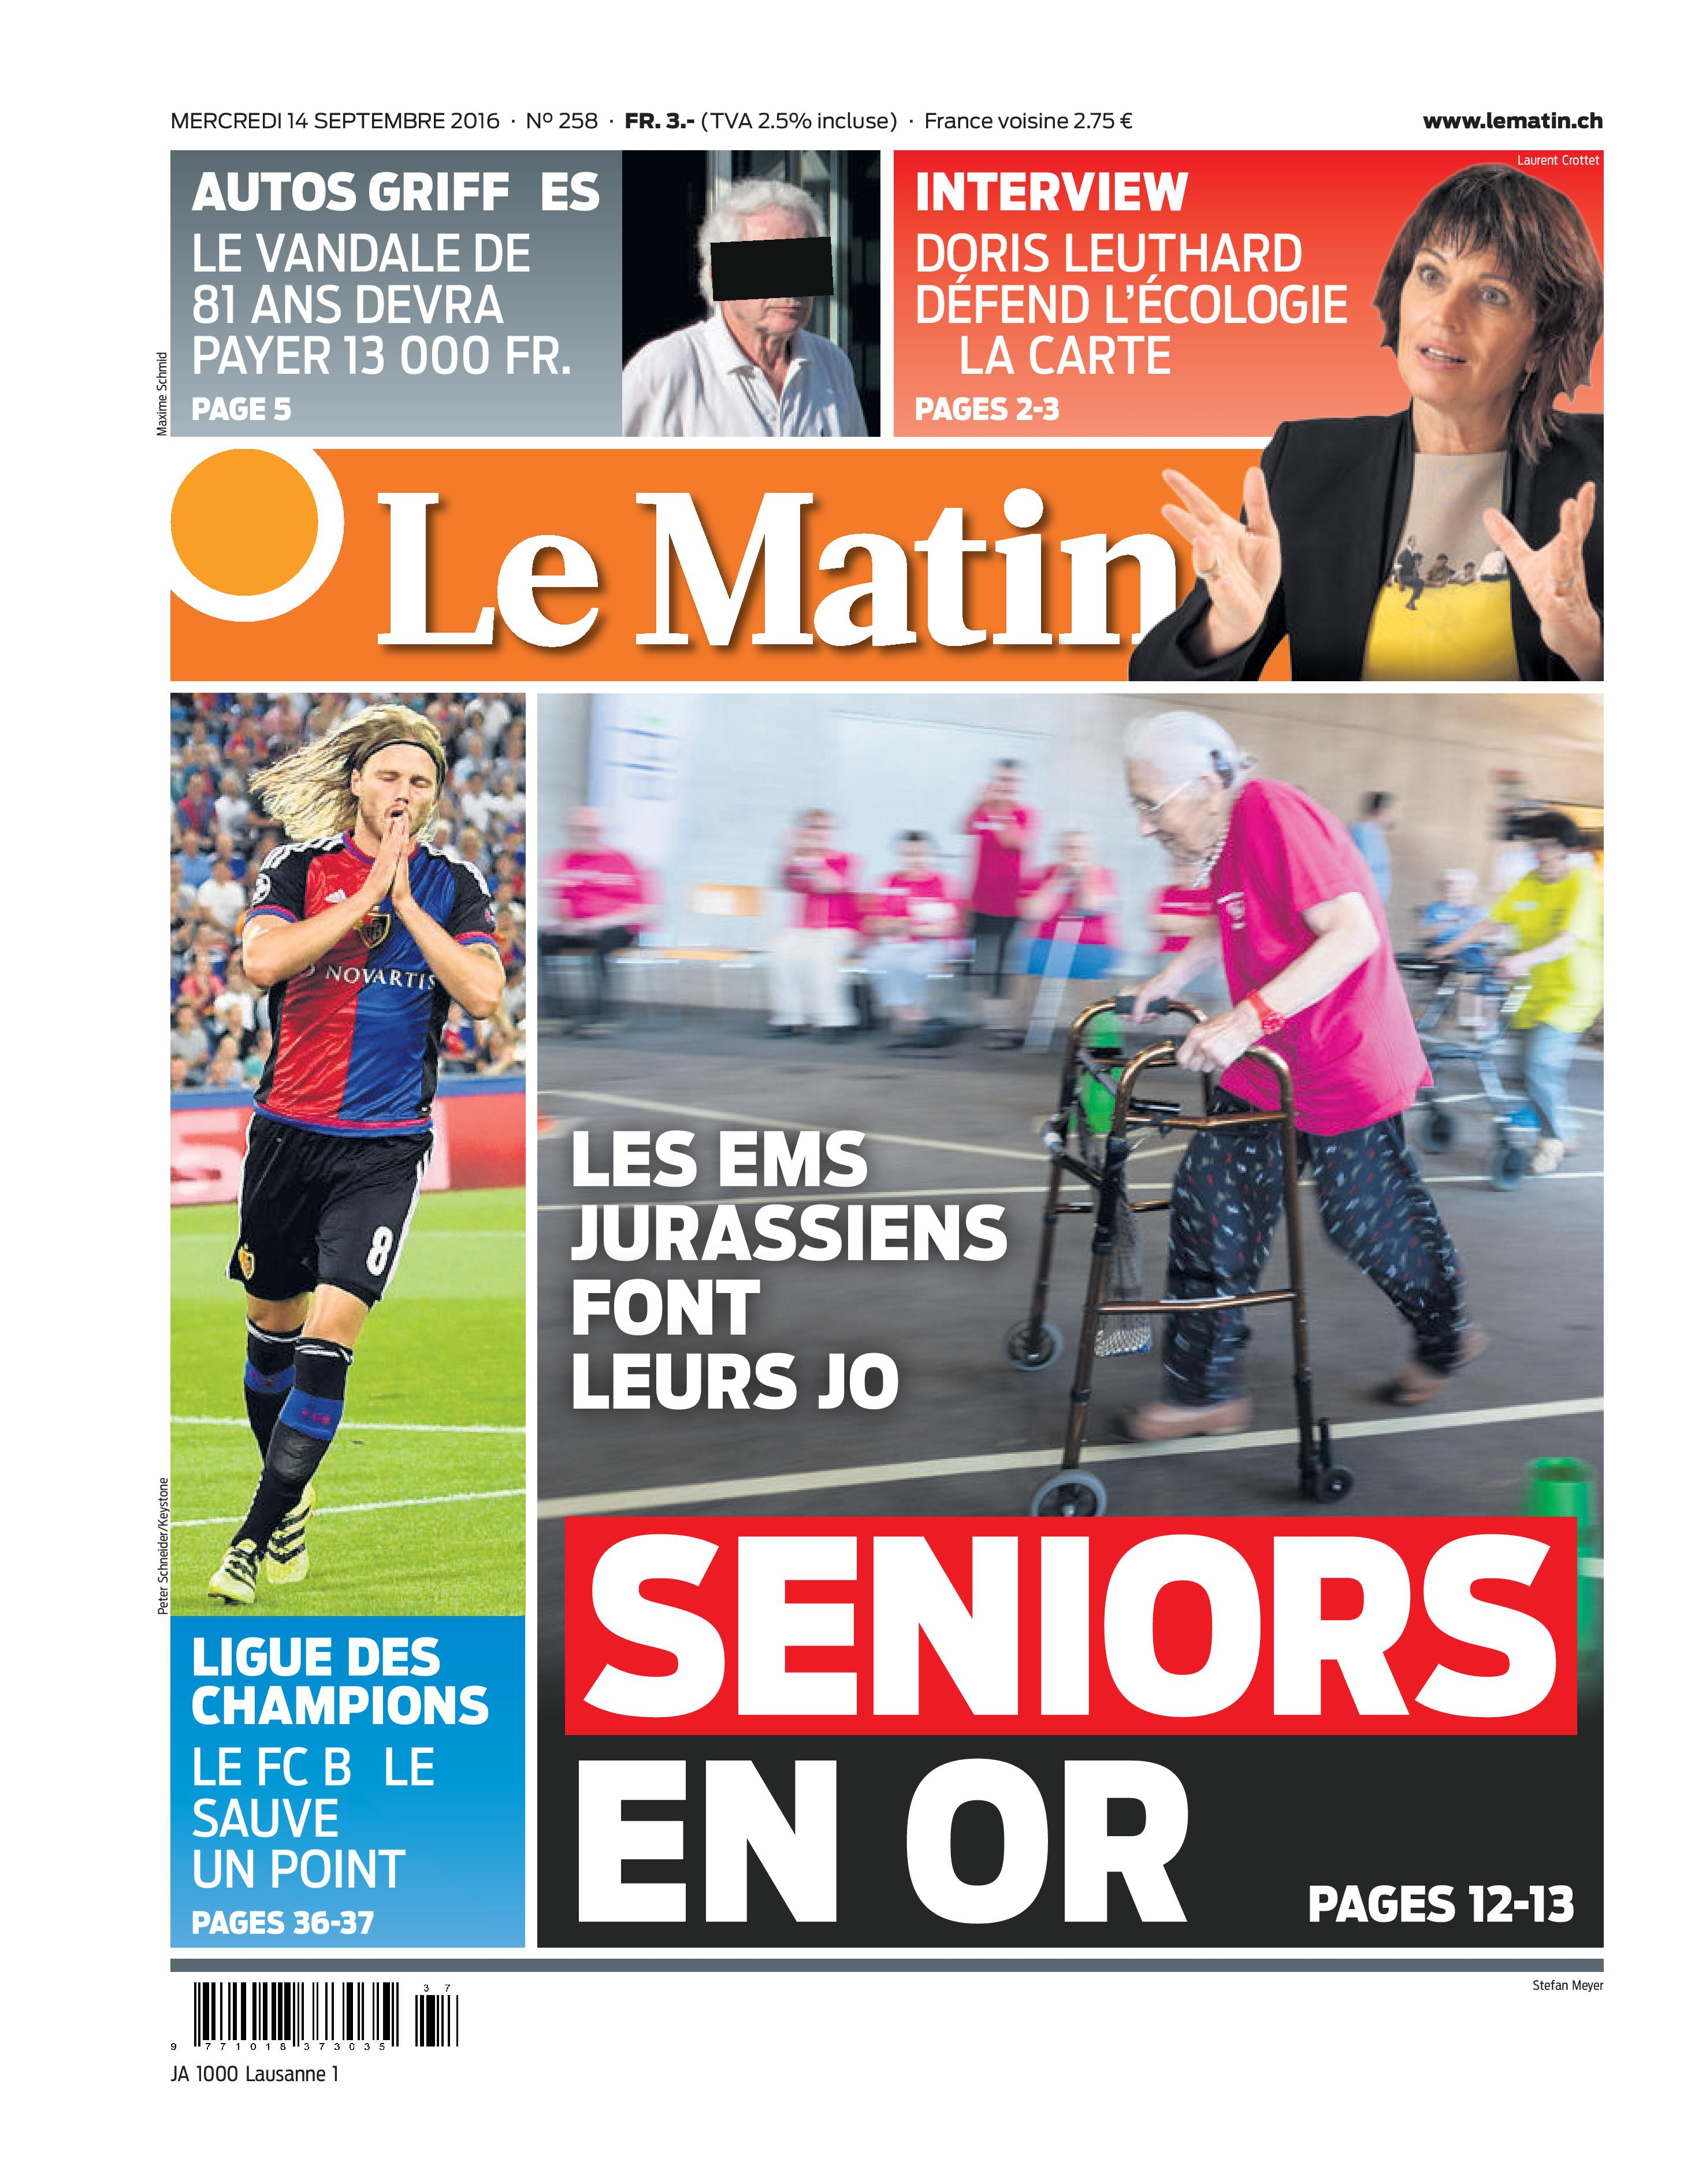 LM_Semaine-LMS-LM3-2016-09-14-0000001-Une-page-001